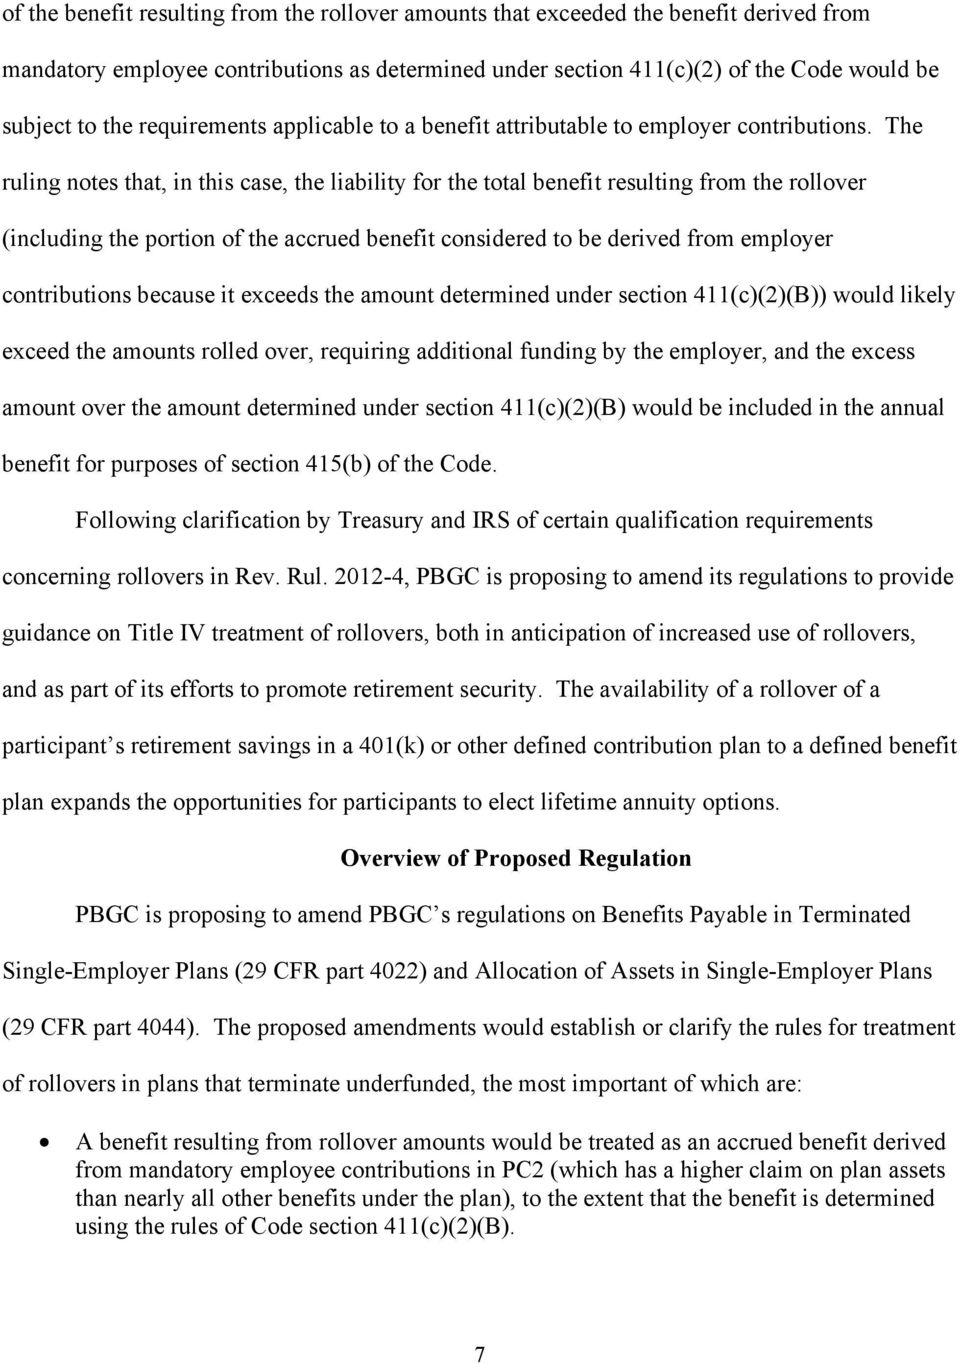 The ruling notes that, in this case, the liability for the total benefit resulting from the rollover (including the portion of the accrued benefit considered to be derived from employer contributions